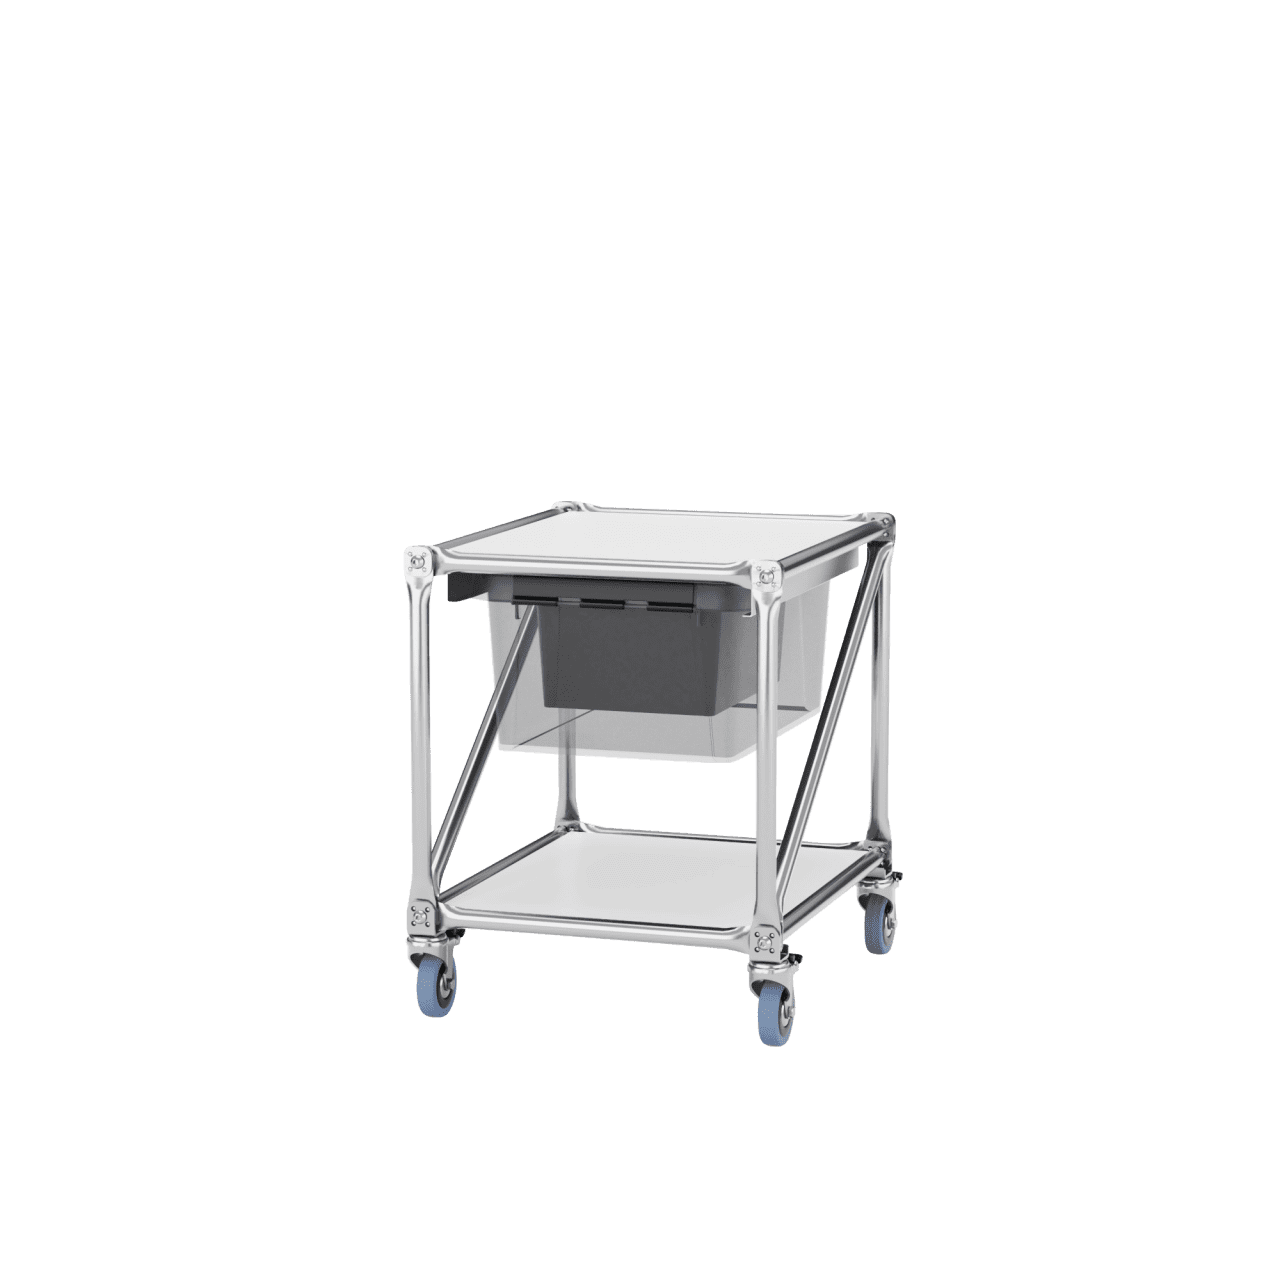 SitRack Rollcontainer